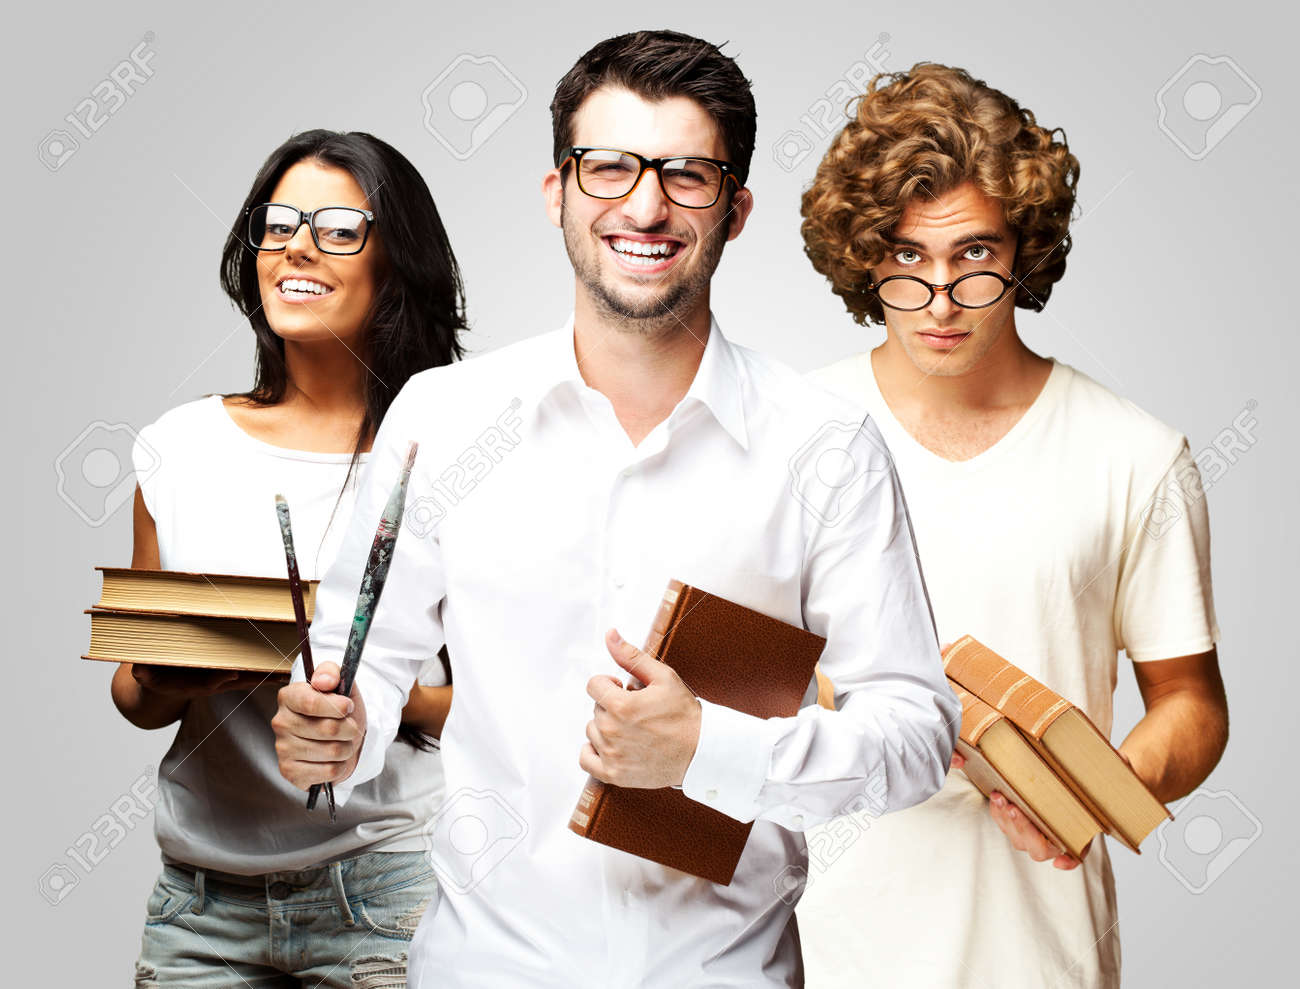 portrait of young students holding books over grey background Stock Photo - 12656305